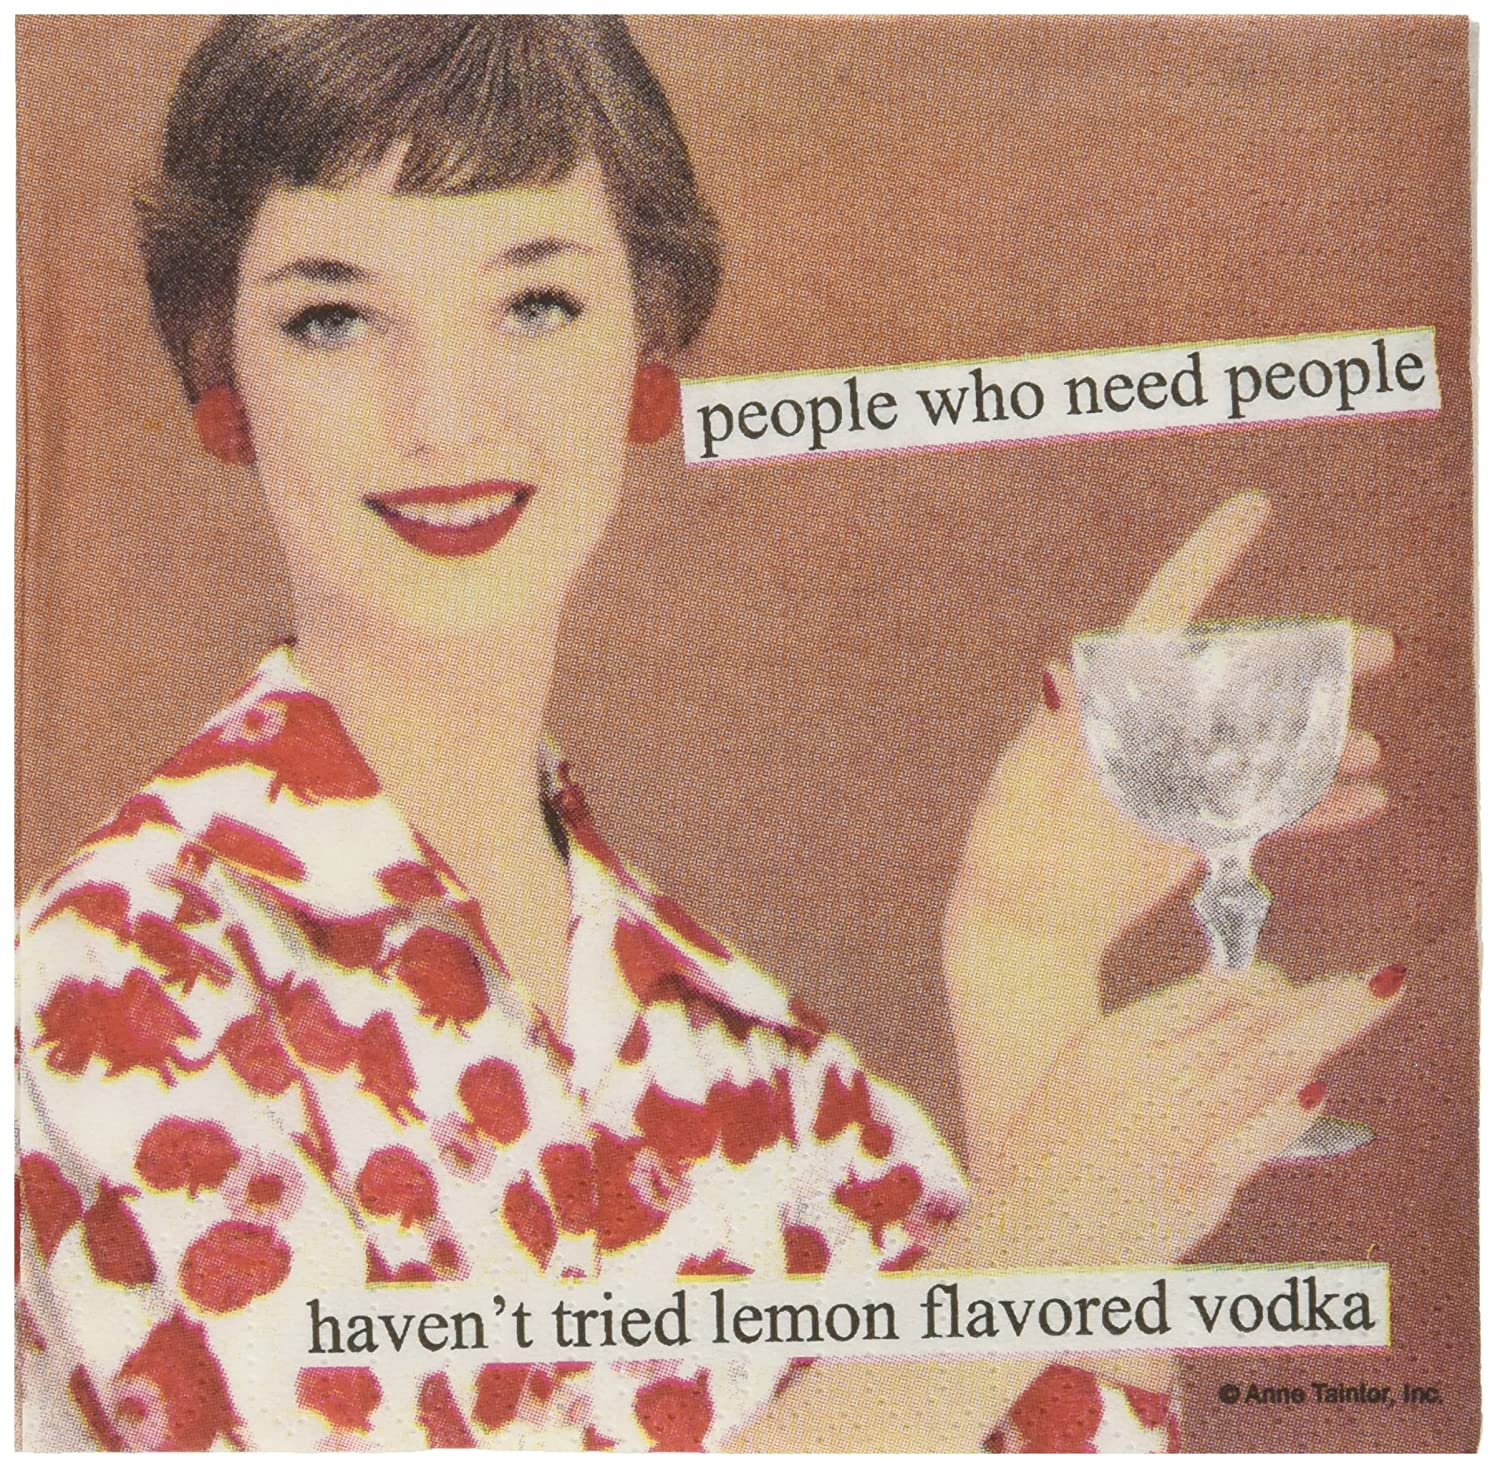 PPD Paperproducts Design People Who Need People Haven't Tried Lemon Vodka Party/Cocktail / Beverage Napkins 1251611